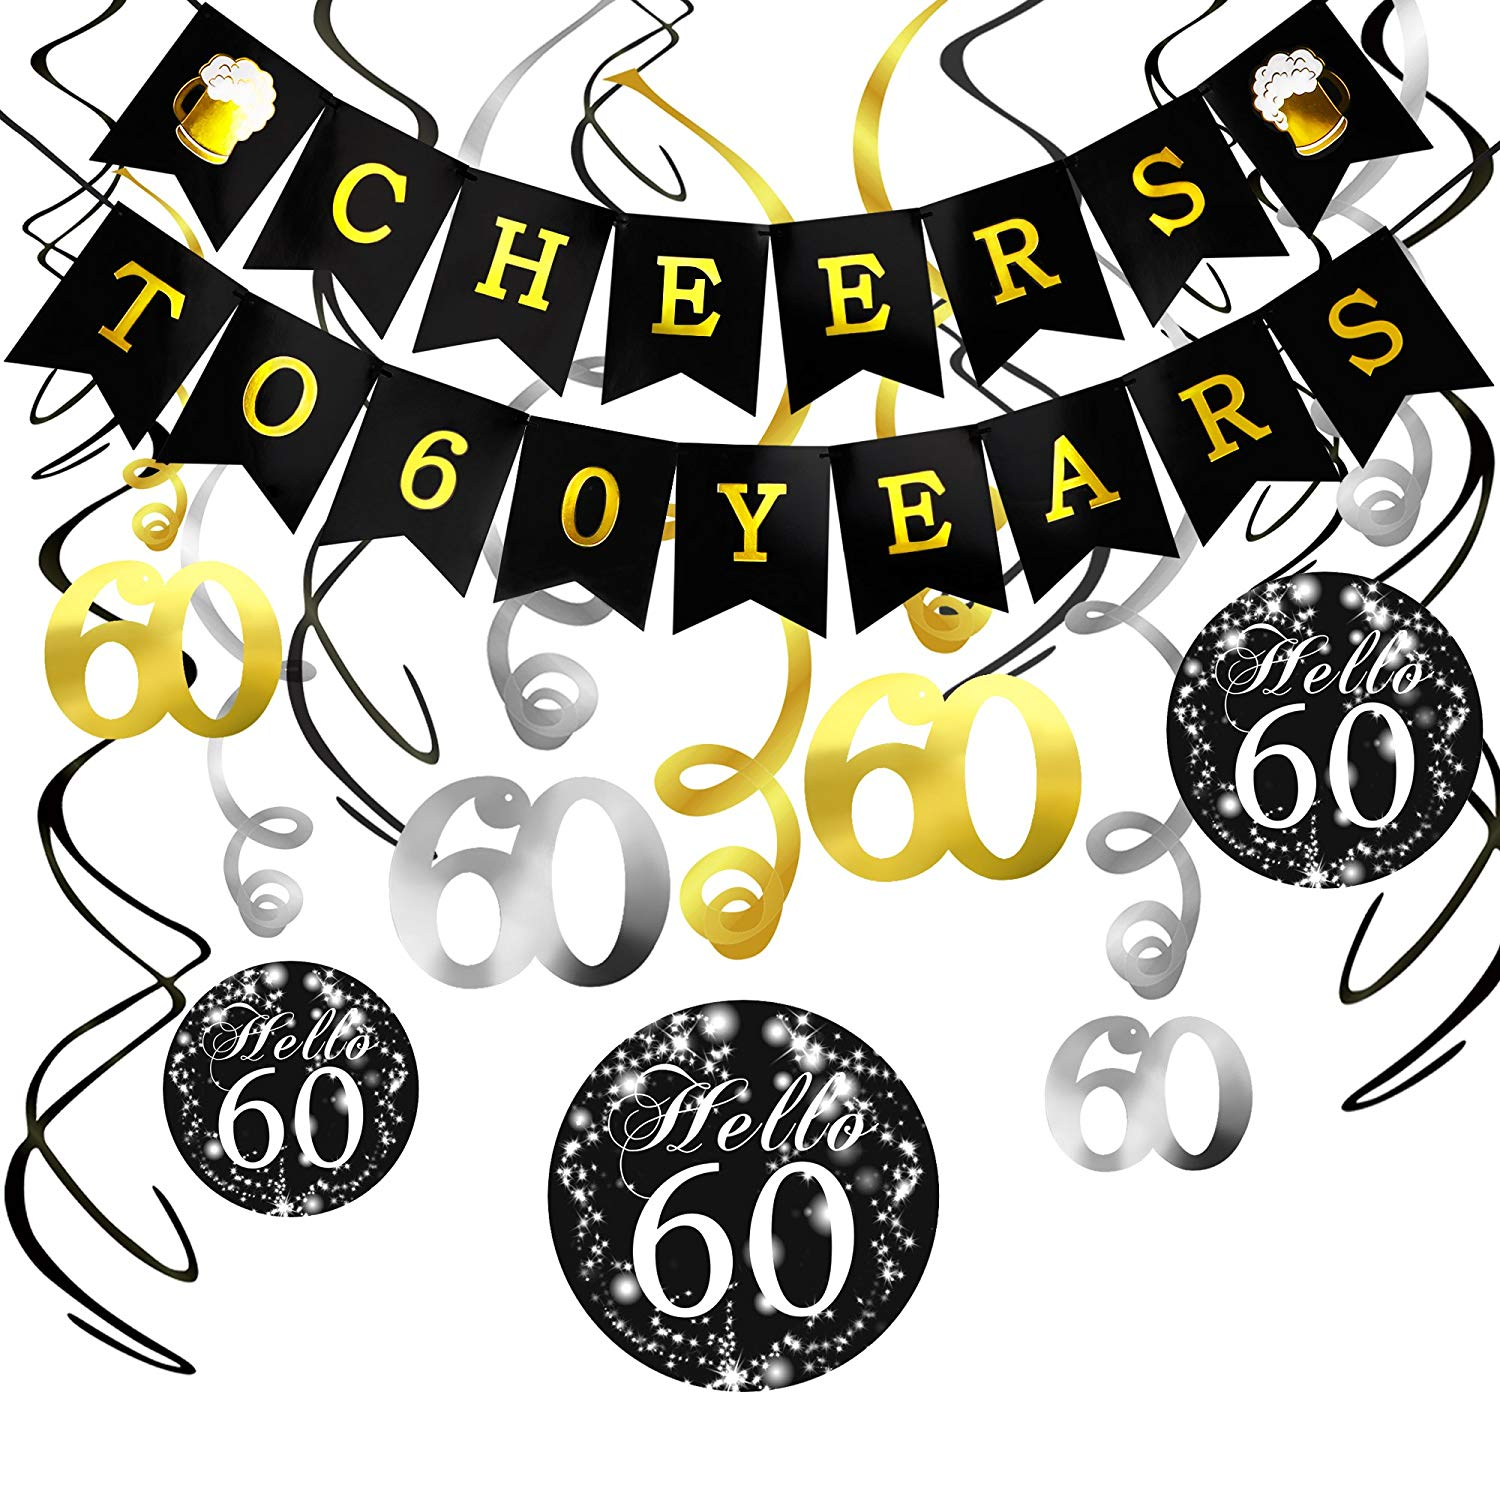 Get Quotations 60th Birthday Decorations Kit Konsait Cheers To 60 Years Banner Swallowtail Bunting Garland Sparkling Celebration